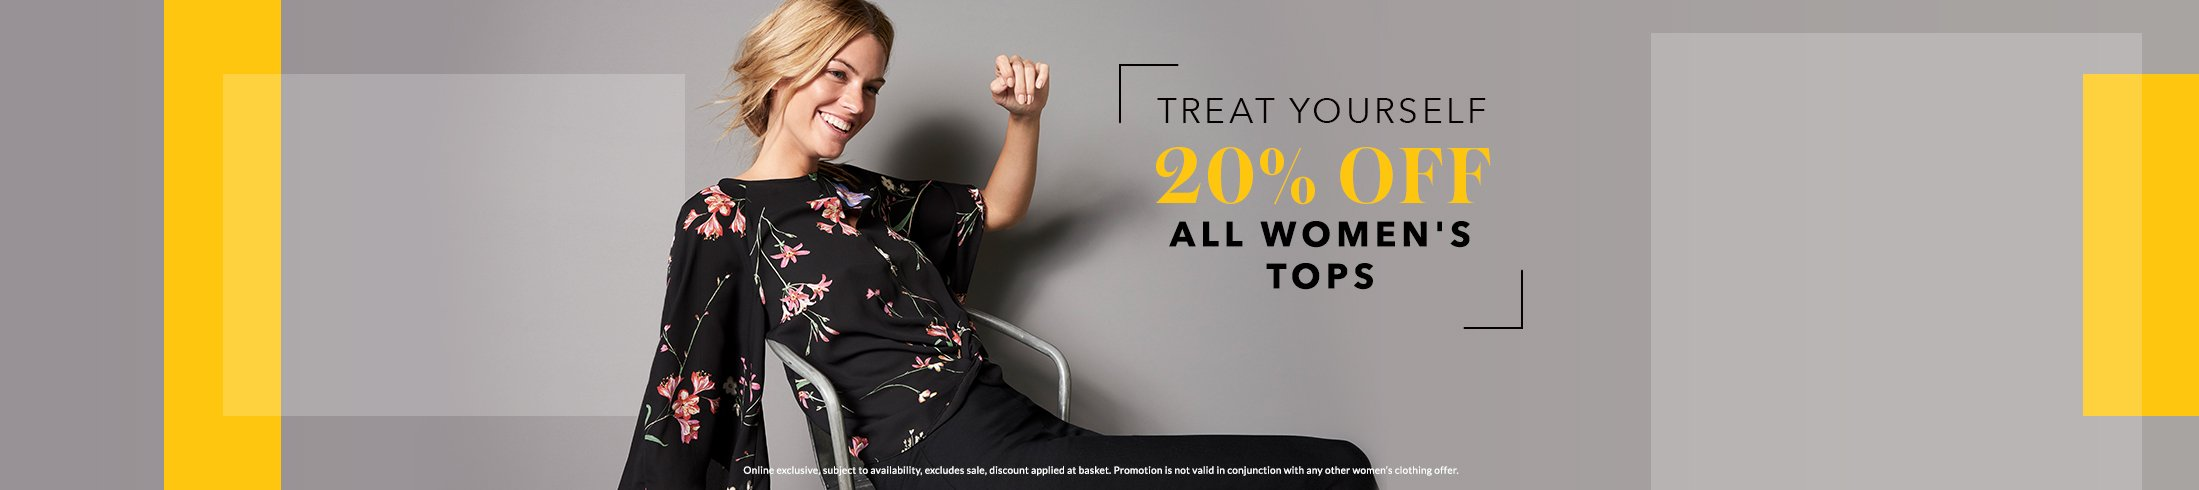 Shop 20% off all women's tops